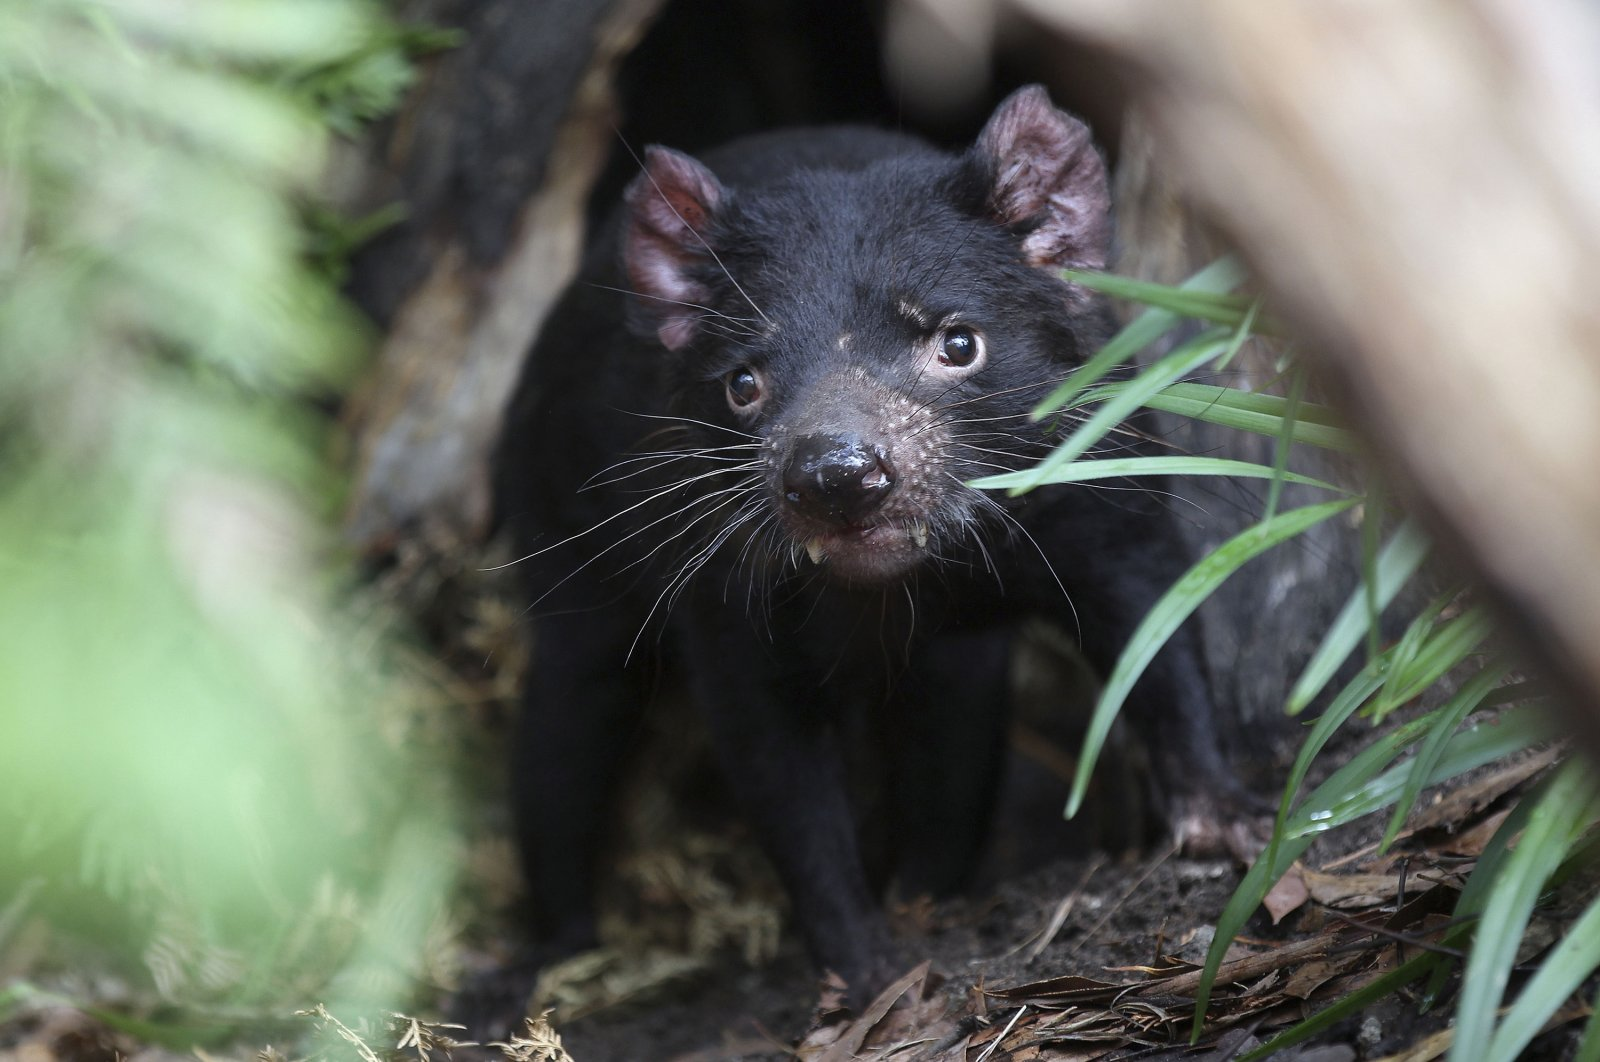 Big John the Tasmanian devil growls from the confines of his new treehouse as he makes his first appearance at the Wild Life Sydney Zoo in Sydney, Australia, Dec. 21, 2012. (AP Photo)